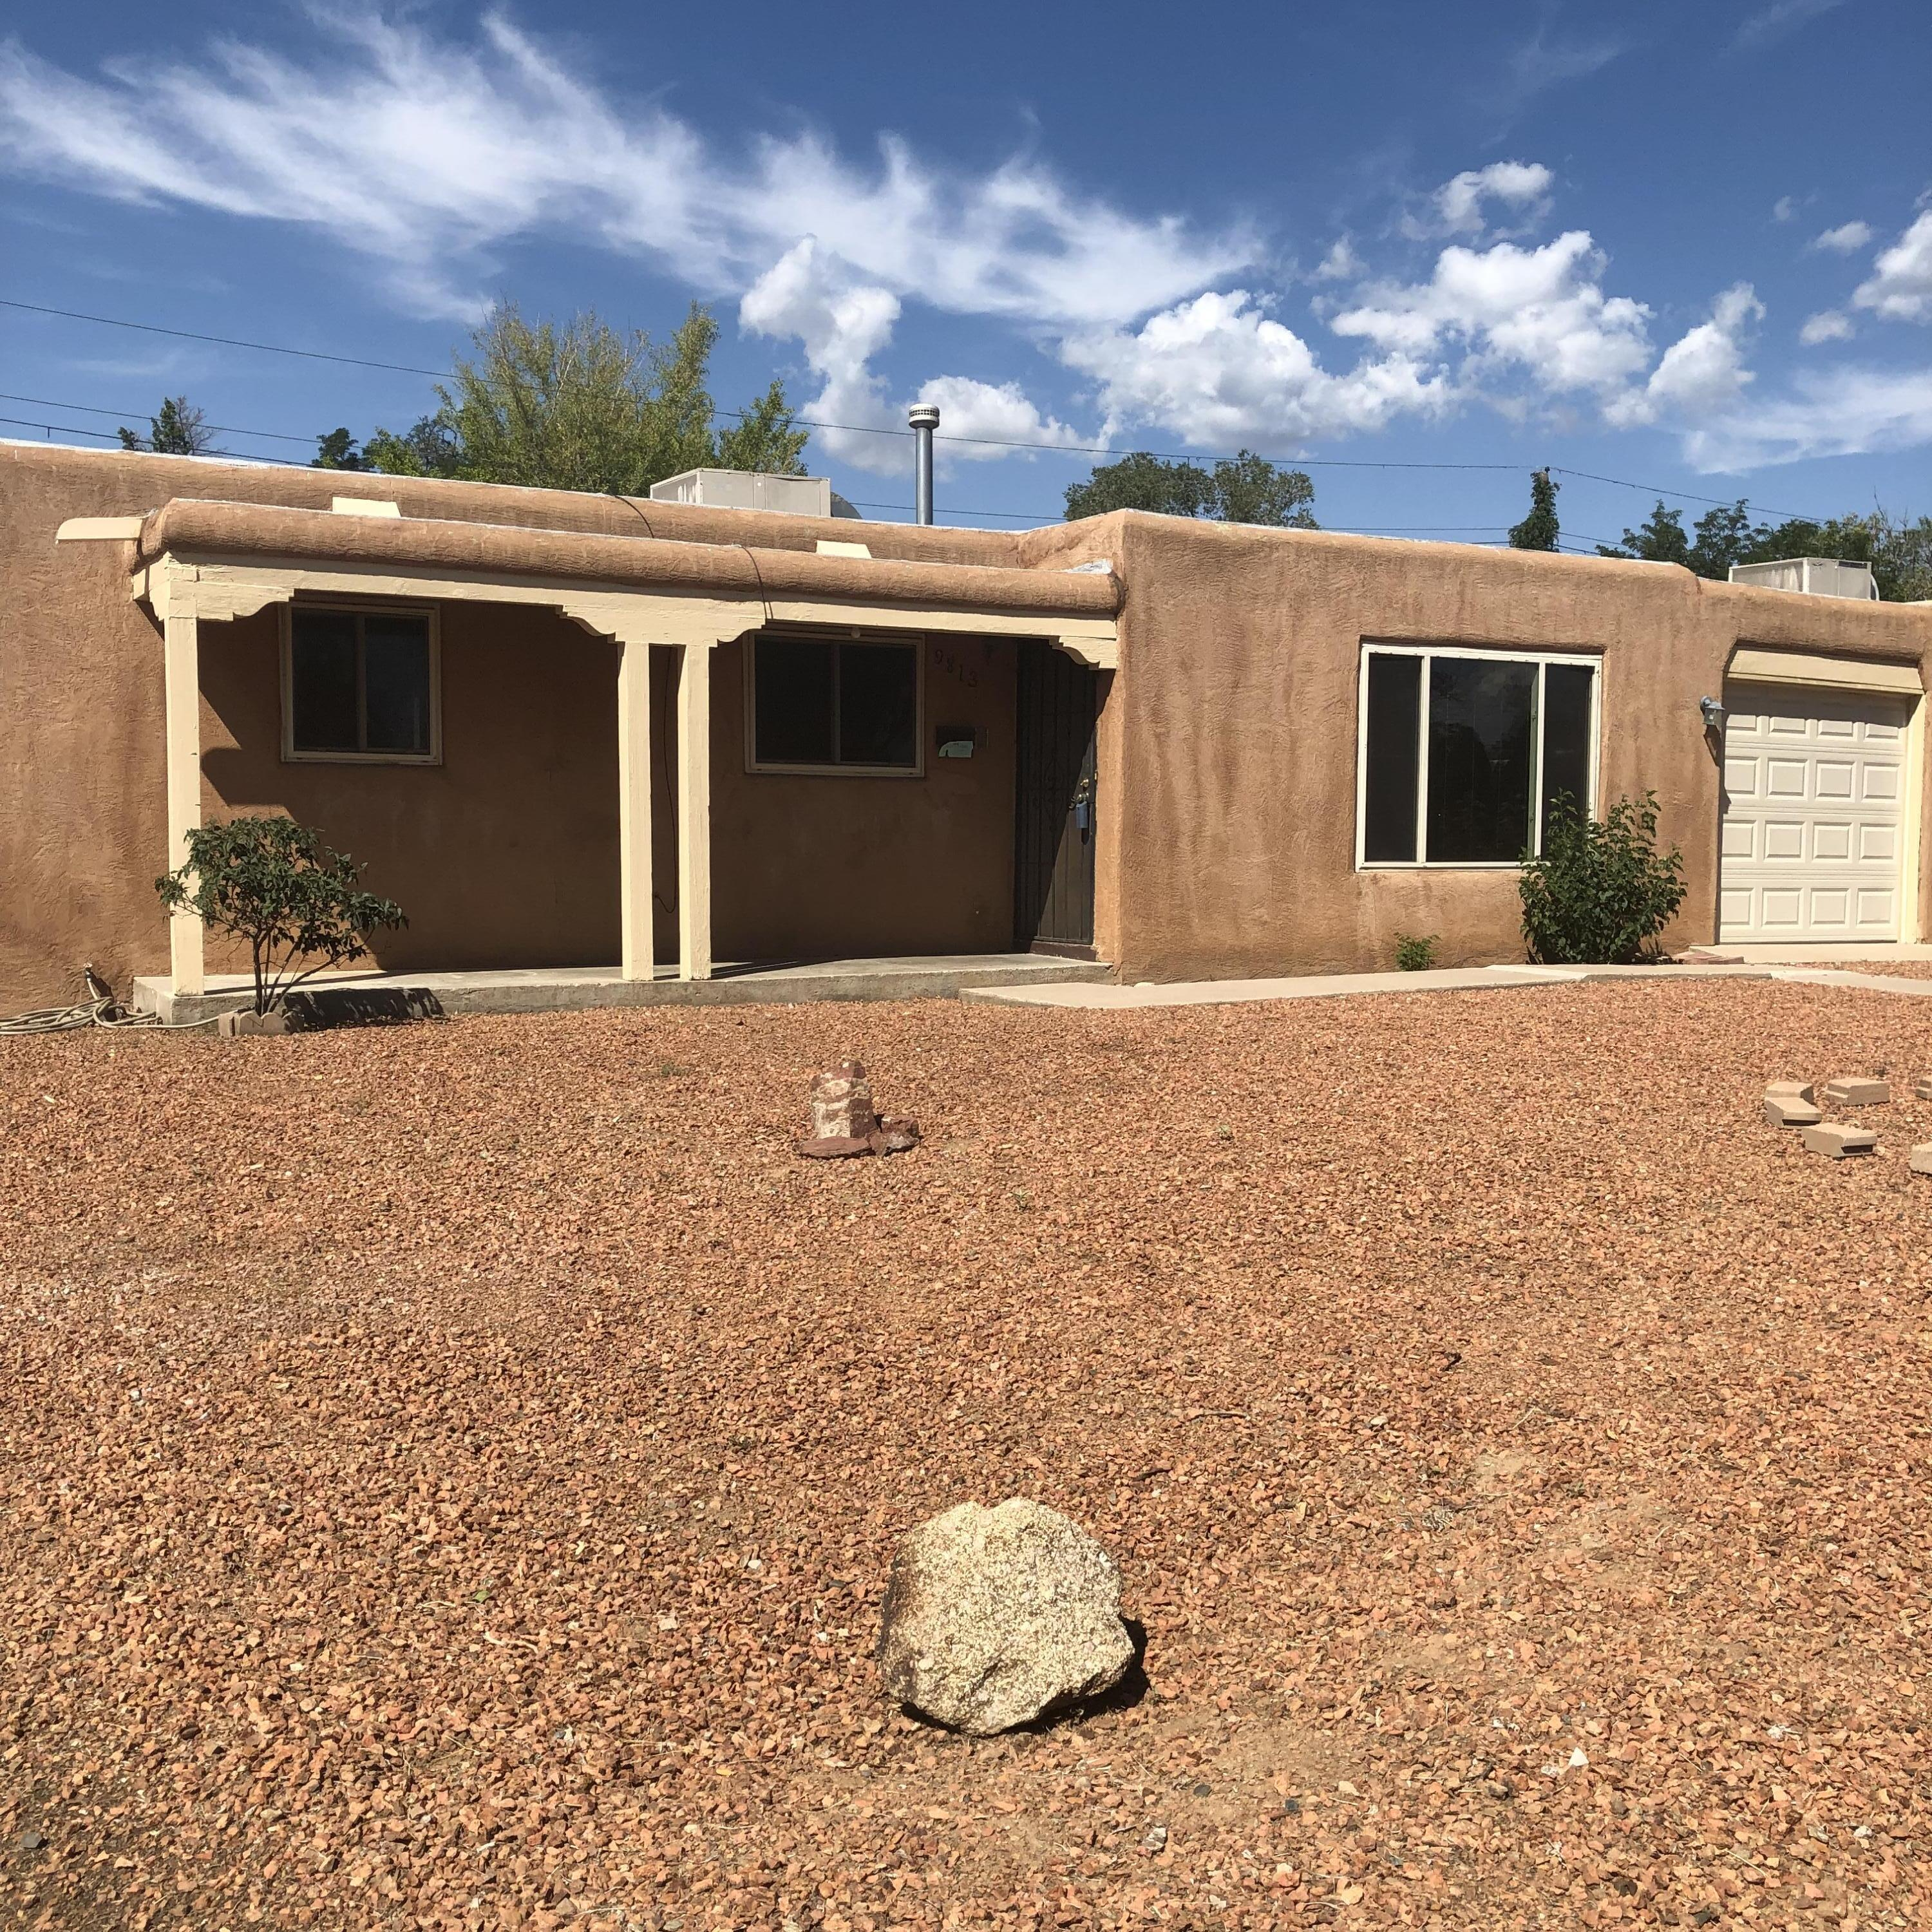 Back on the market...sad words but great opportunity!House priced under appraisal, come and get it!!!This darling home in an established well loved neighborhood could be yours!3 roomy bedrooms 1 bath with an extra bedroom or office for you!  Recent water heater and Air conditioner. Wonderful utility room with washer and dryer included, (no warranties on conveyed appliances) Super solid home is ready for you! The possibilities are endless and exciting at this price range. Potential, passion and possibilities are all yours in this lovely home.Selling AS-is and priced according!